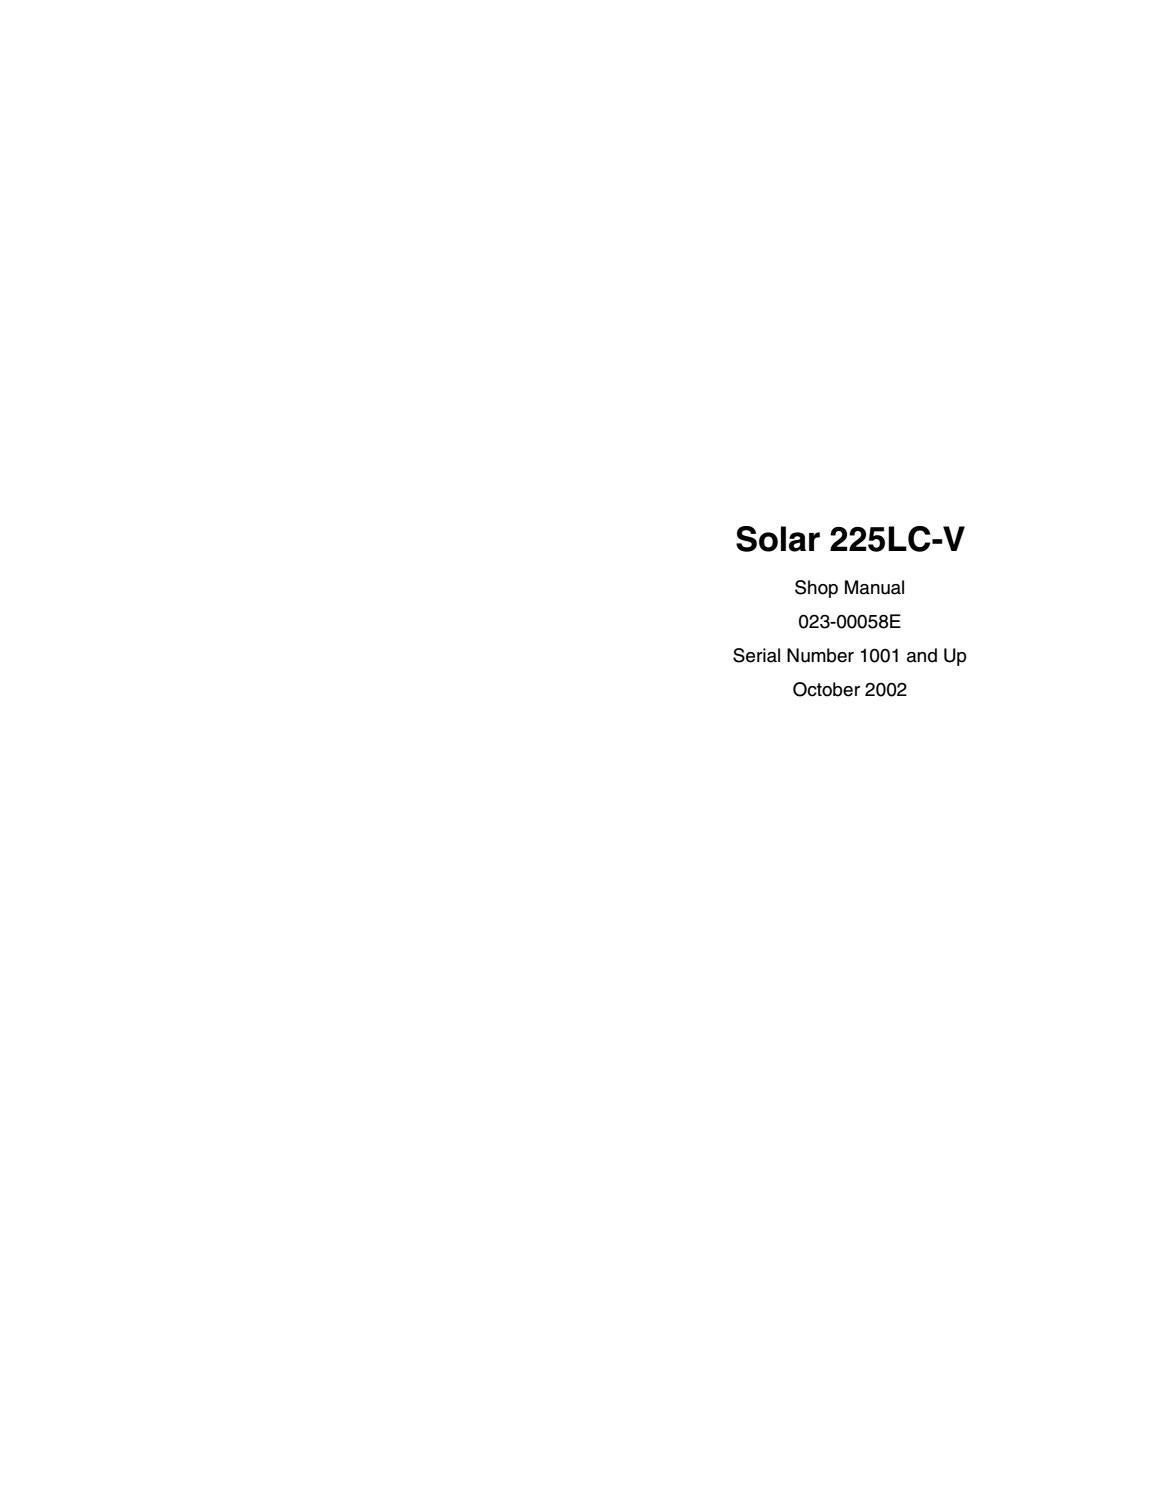 Doosan daewoo solar 225lc v excavator service repair manual sn:1001 and up  by 163757 - issuu